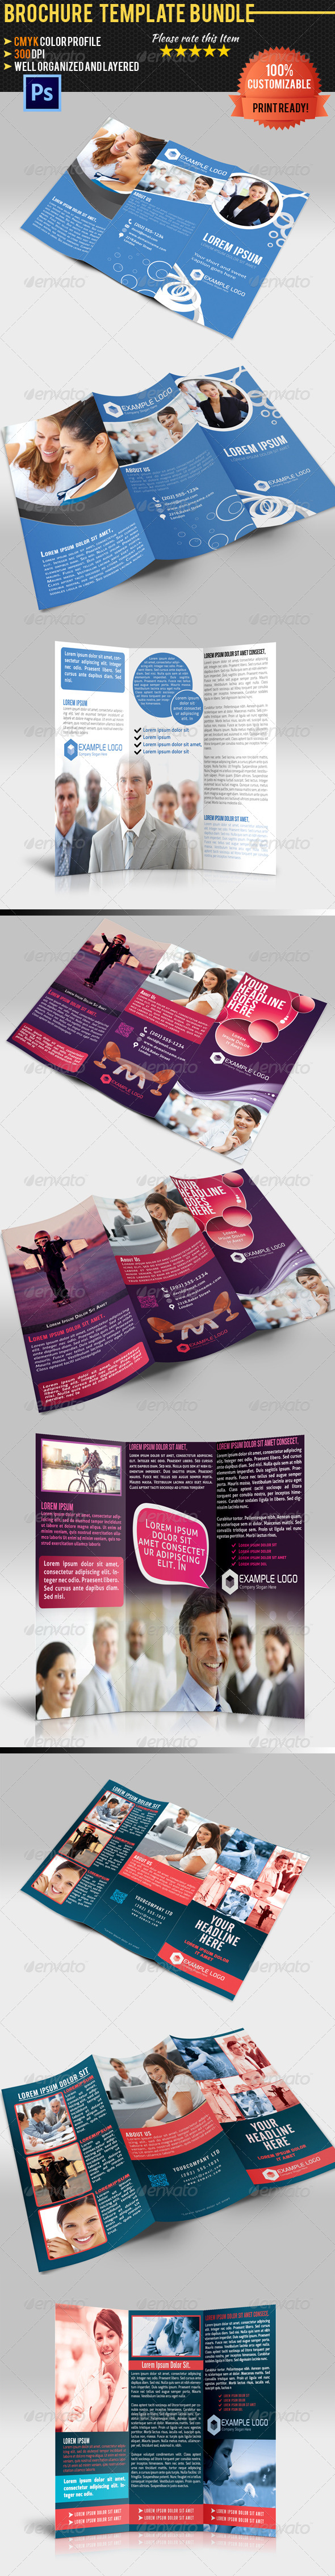 GraphicRiver Tri-Fold Corporate Business Brochure Bundle 01 4656155